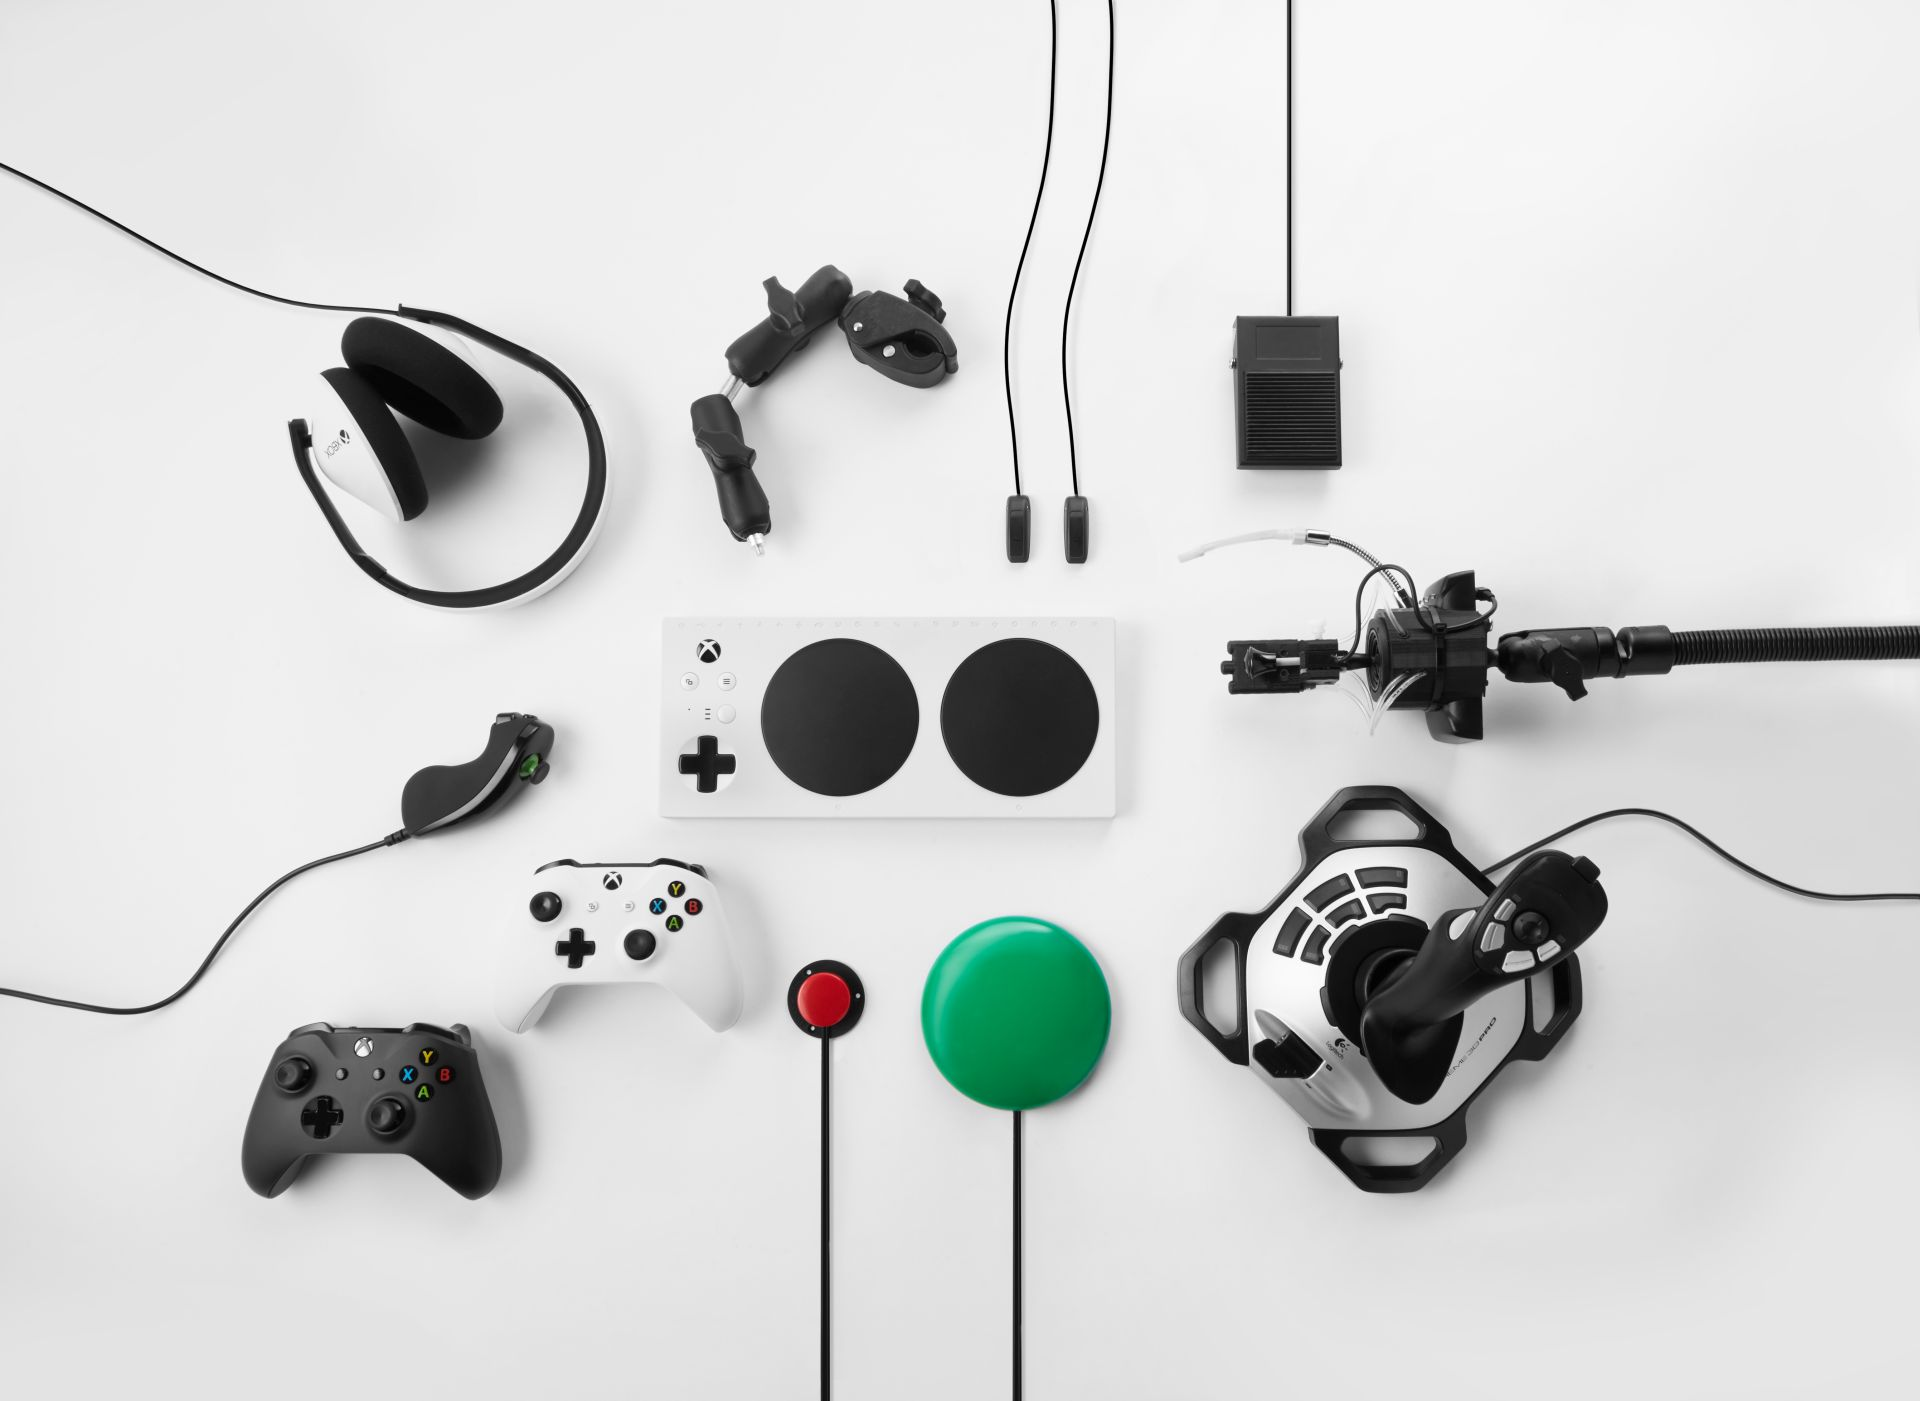 Microsoft Announces the Xbox Adaptive Controller for Players With Disabilities